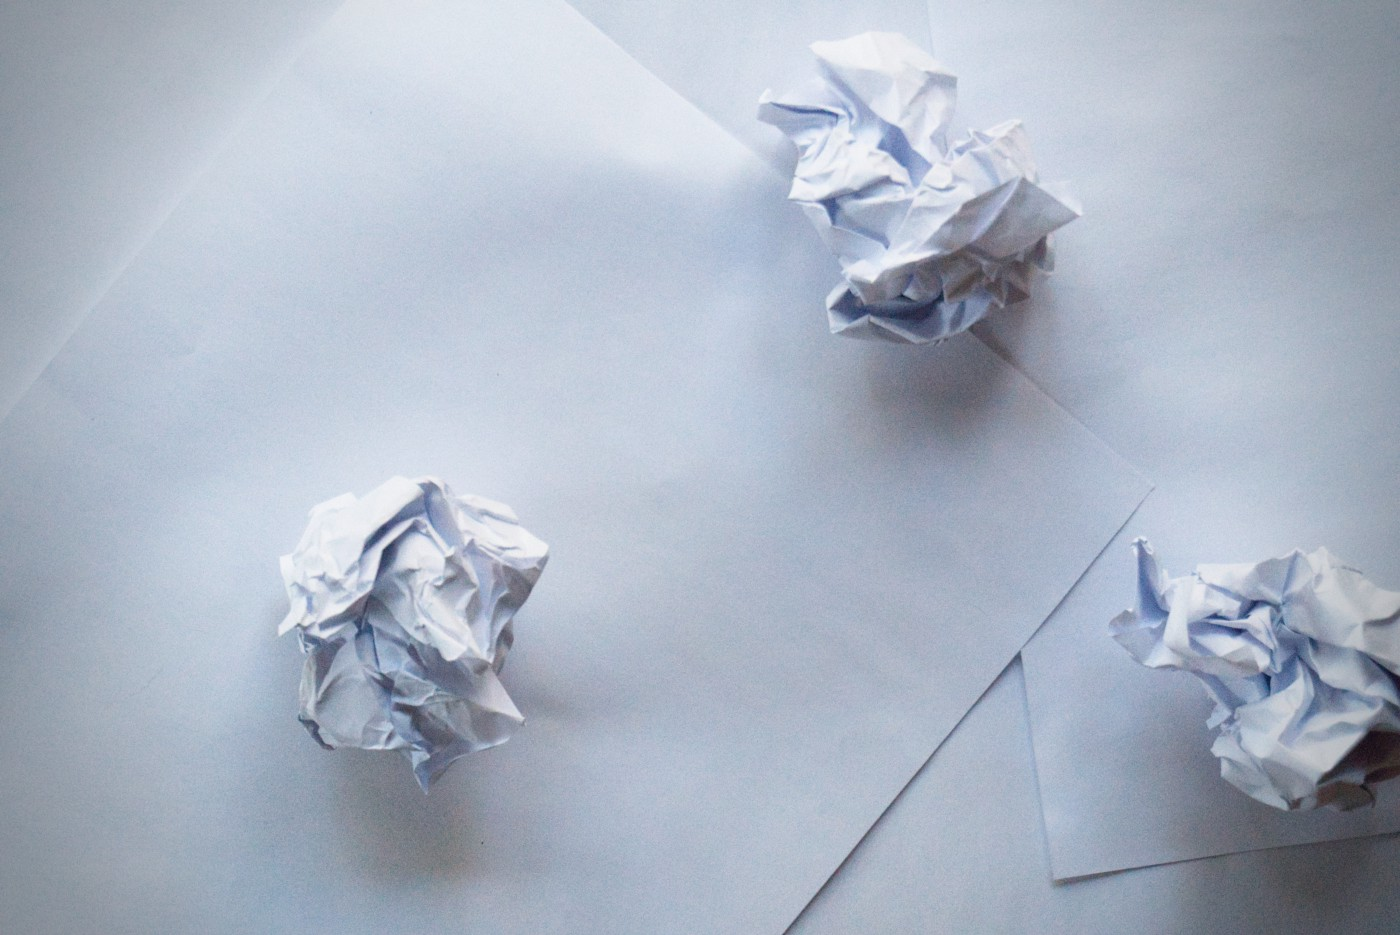 three crumpled pieces of paper on top of two blank sheets of paper